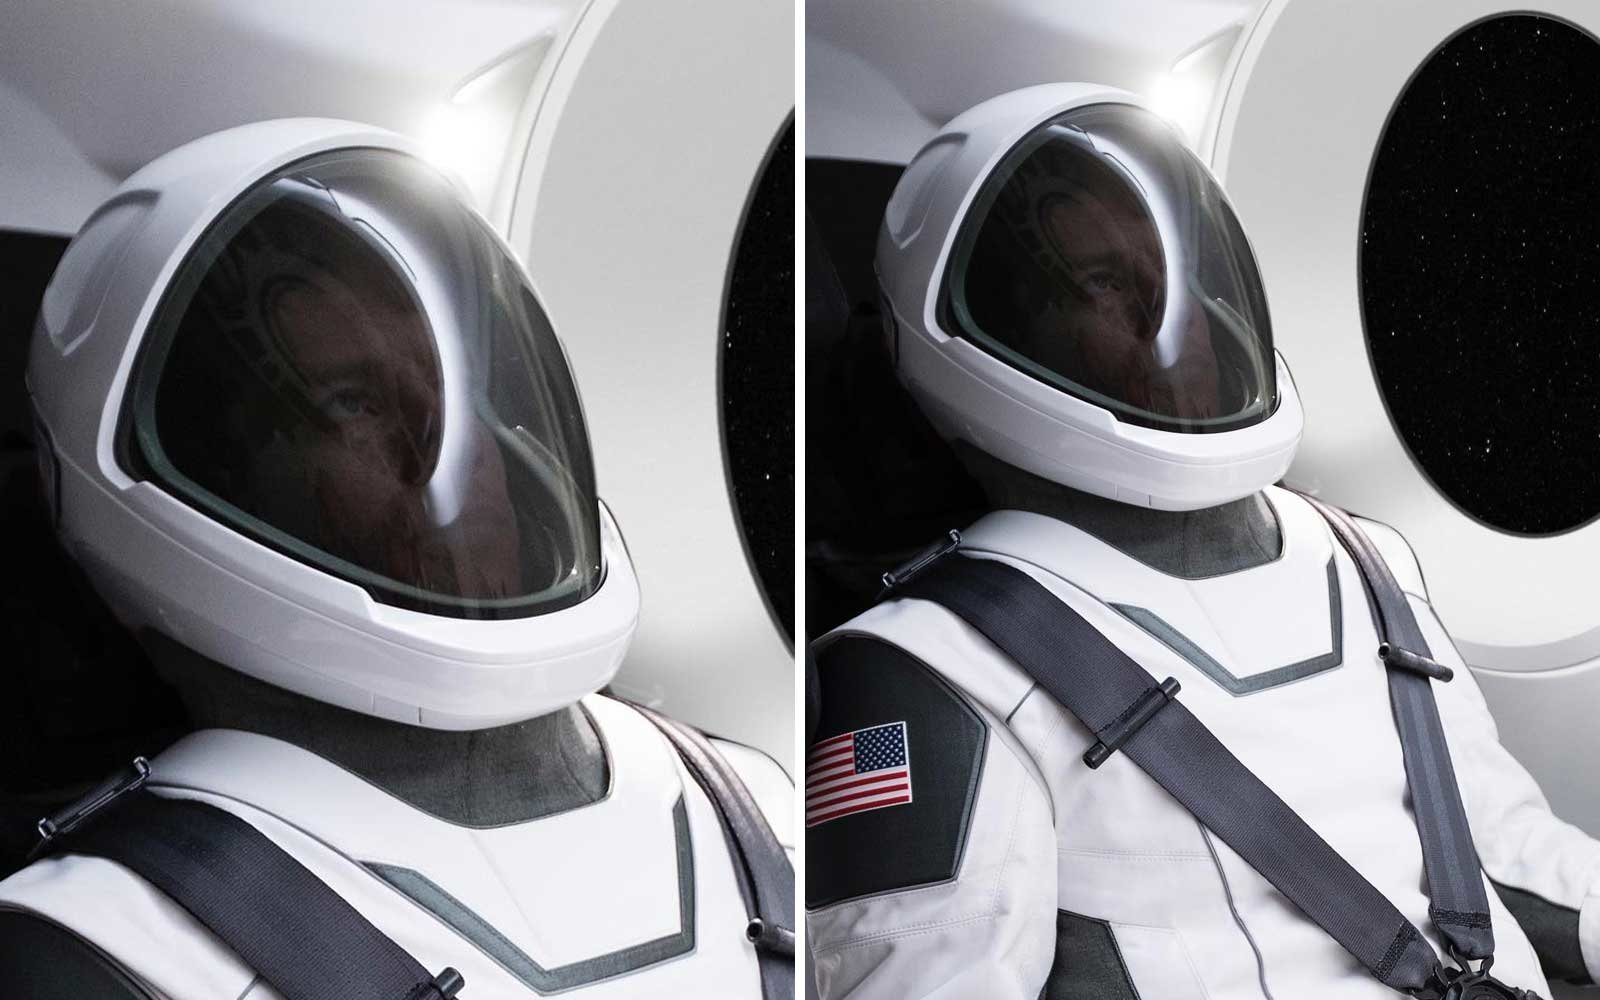 SpaceX Suit Posted by Elon Musk